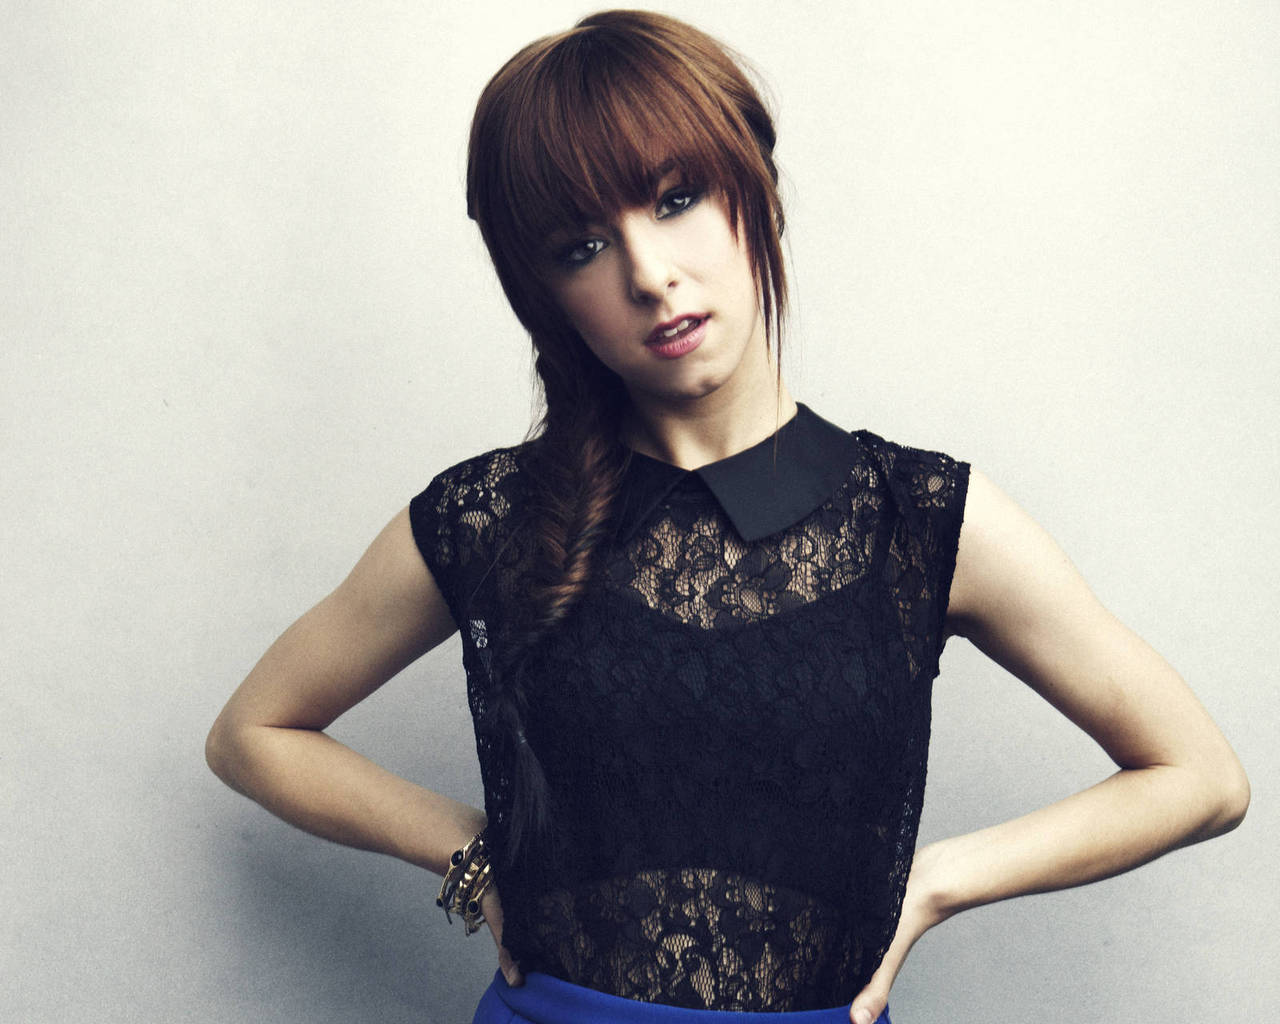 Full Hd Live Wallpaper For Laptop 5 Hd Christina Grimmie Wallpapers Stunning Hd Wallpapers